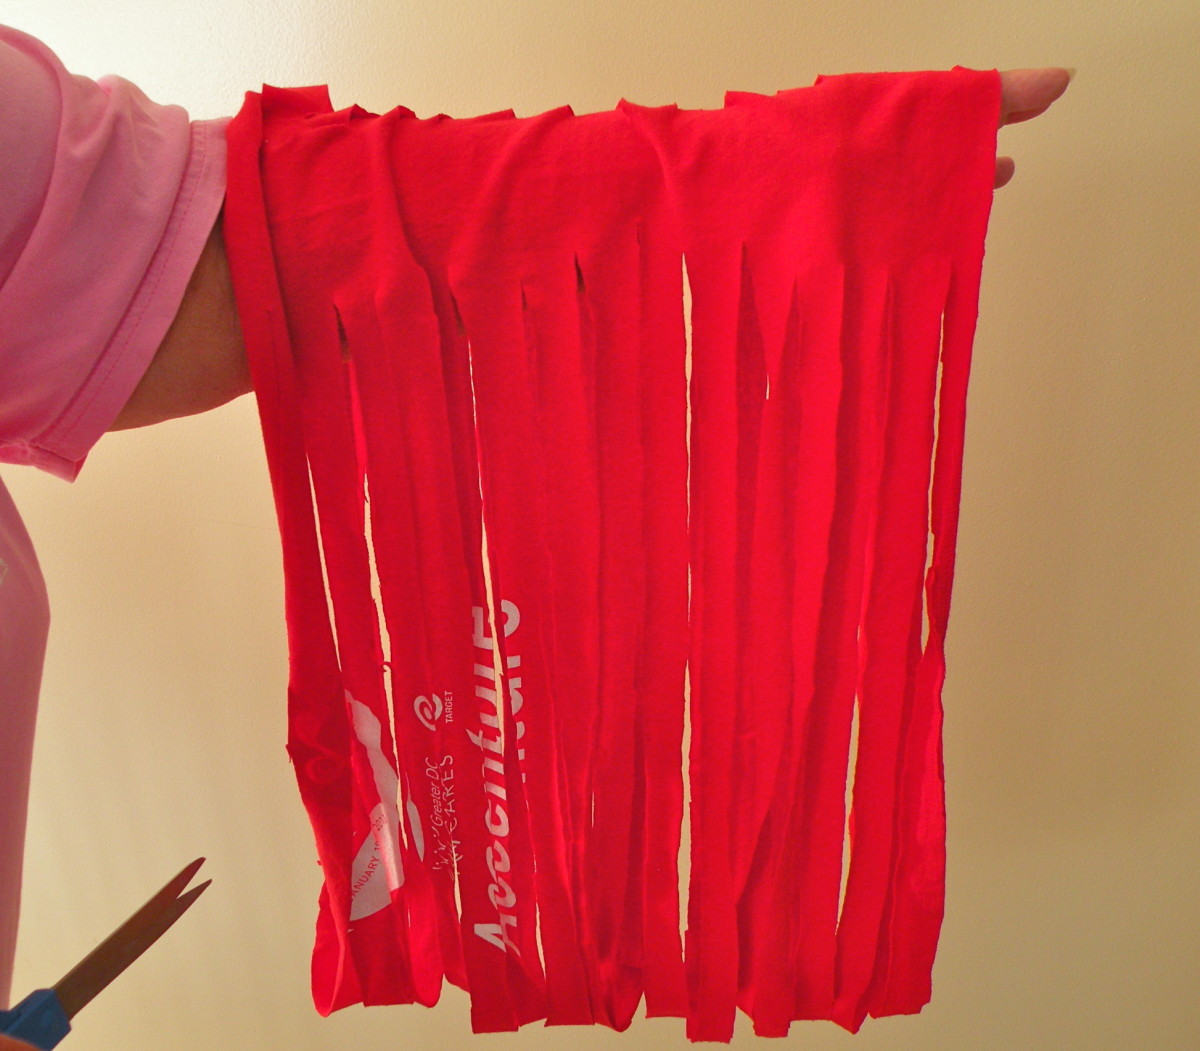 When the T shirt is cut into strips, slide your hand into the tube to separate it.